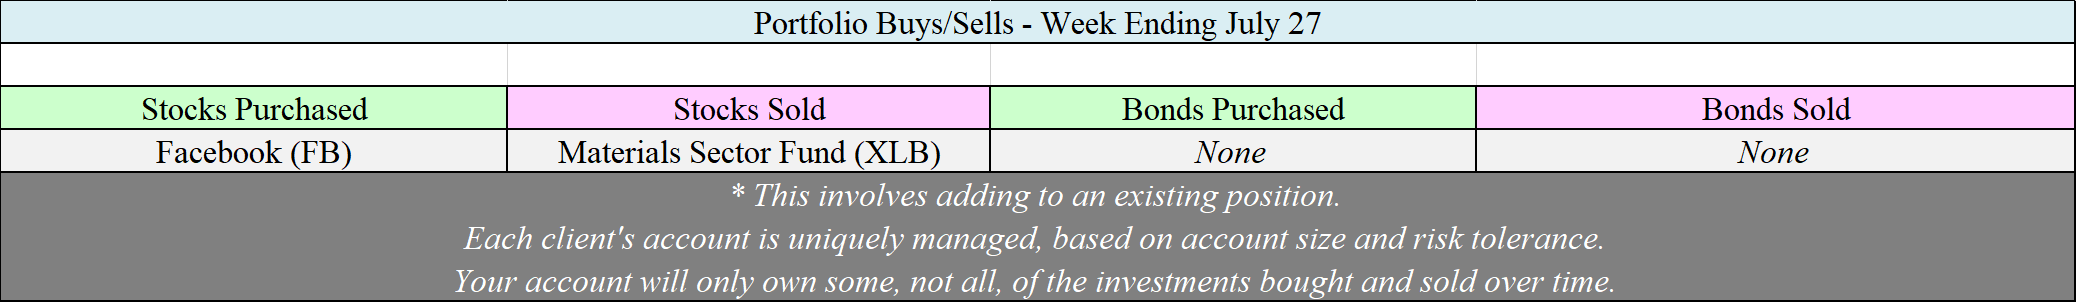 Allocation Changes - 07-27-18.png